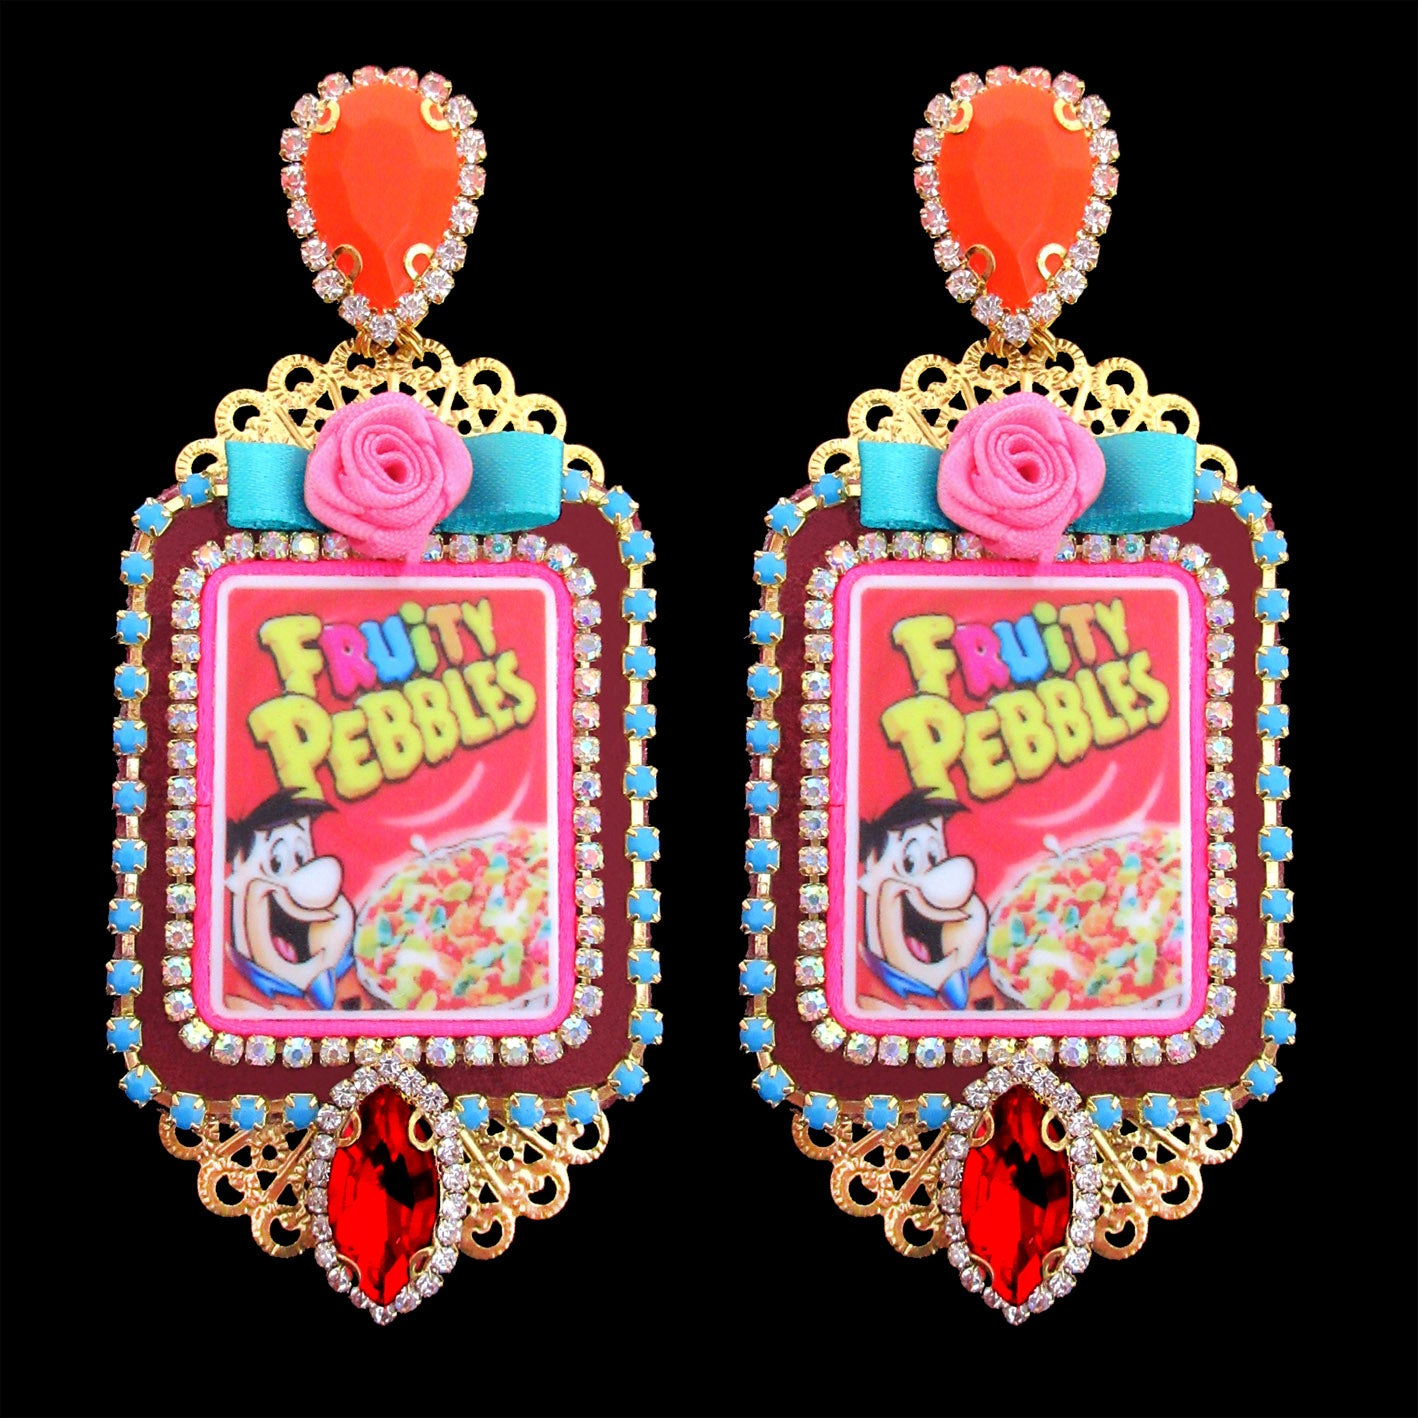 mouchkine jewelry couture luxury flintstones earrings, popart made in france.